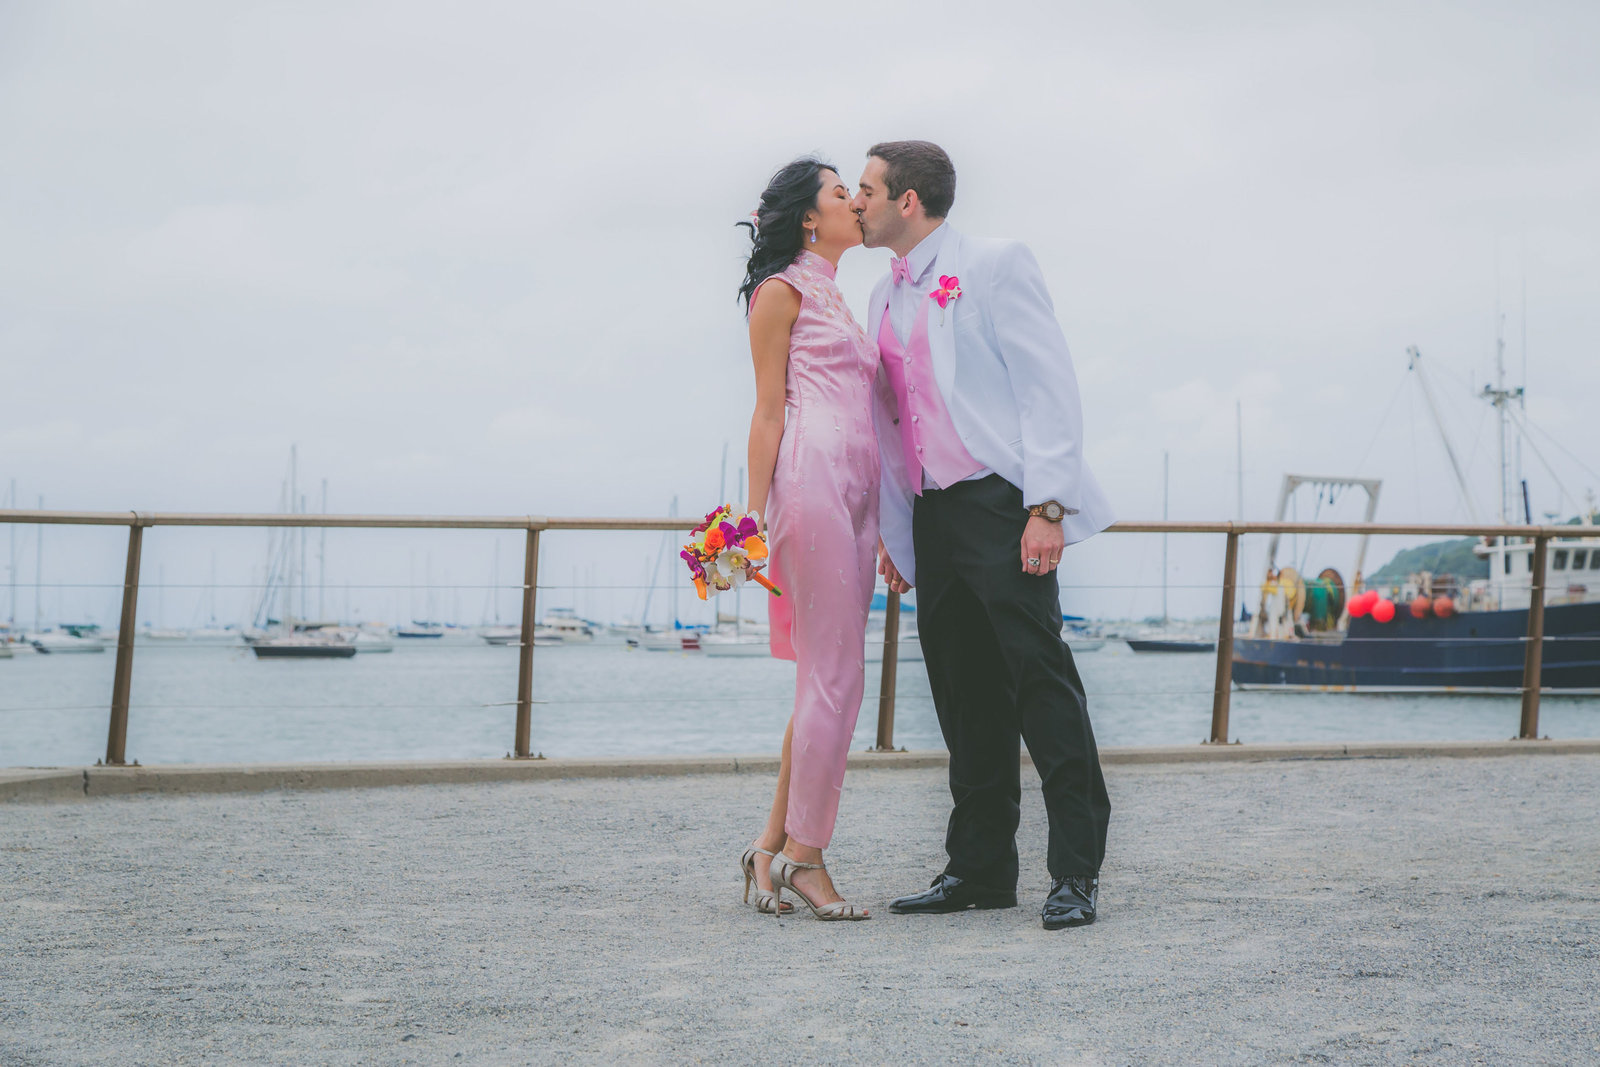 Bride and groom kisses with boats in water at Port Jefferson.